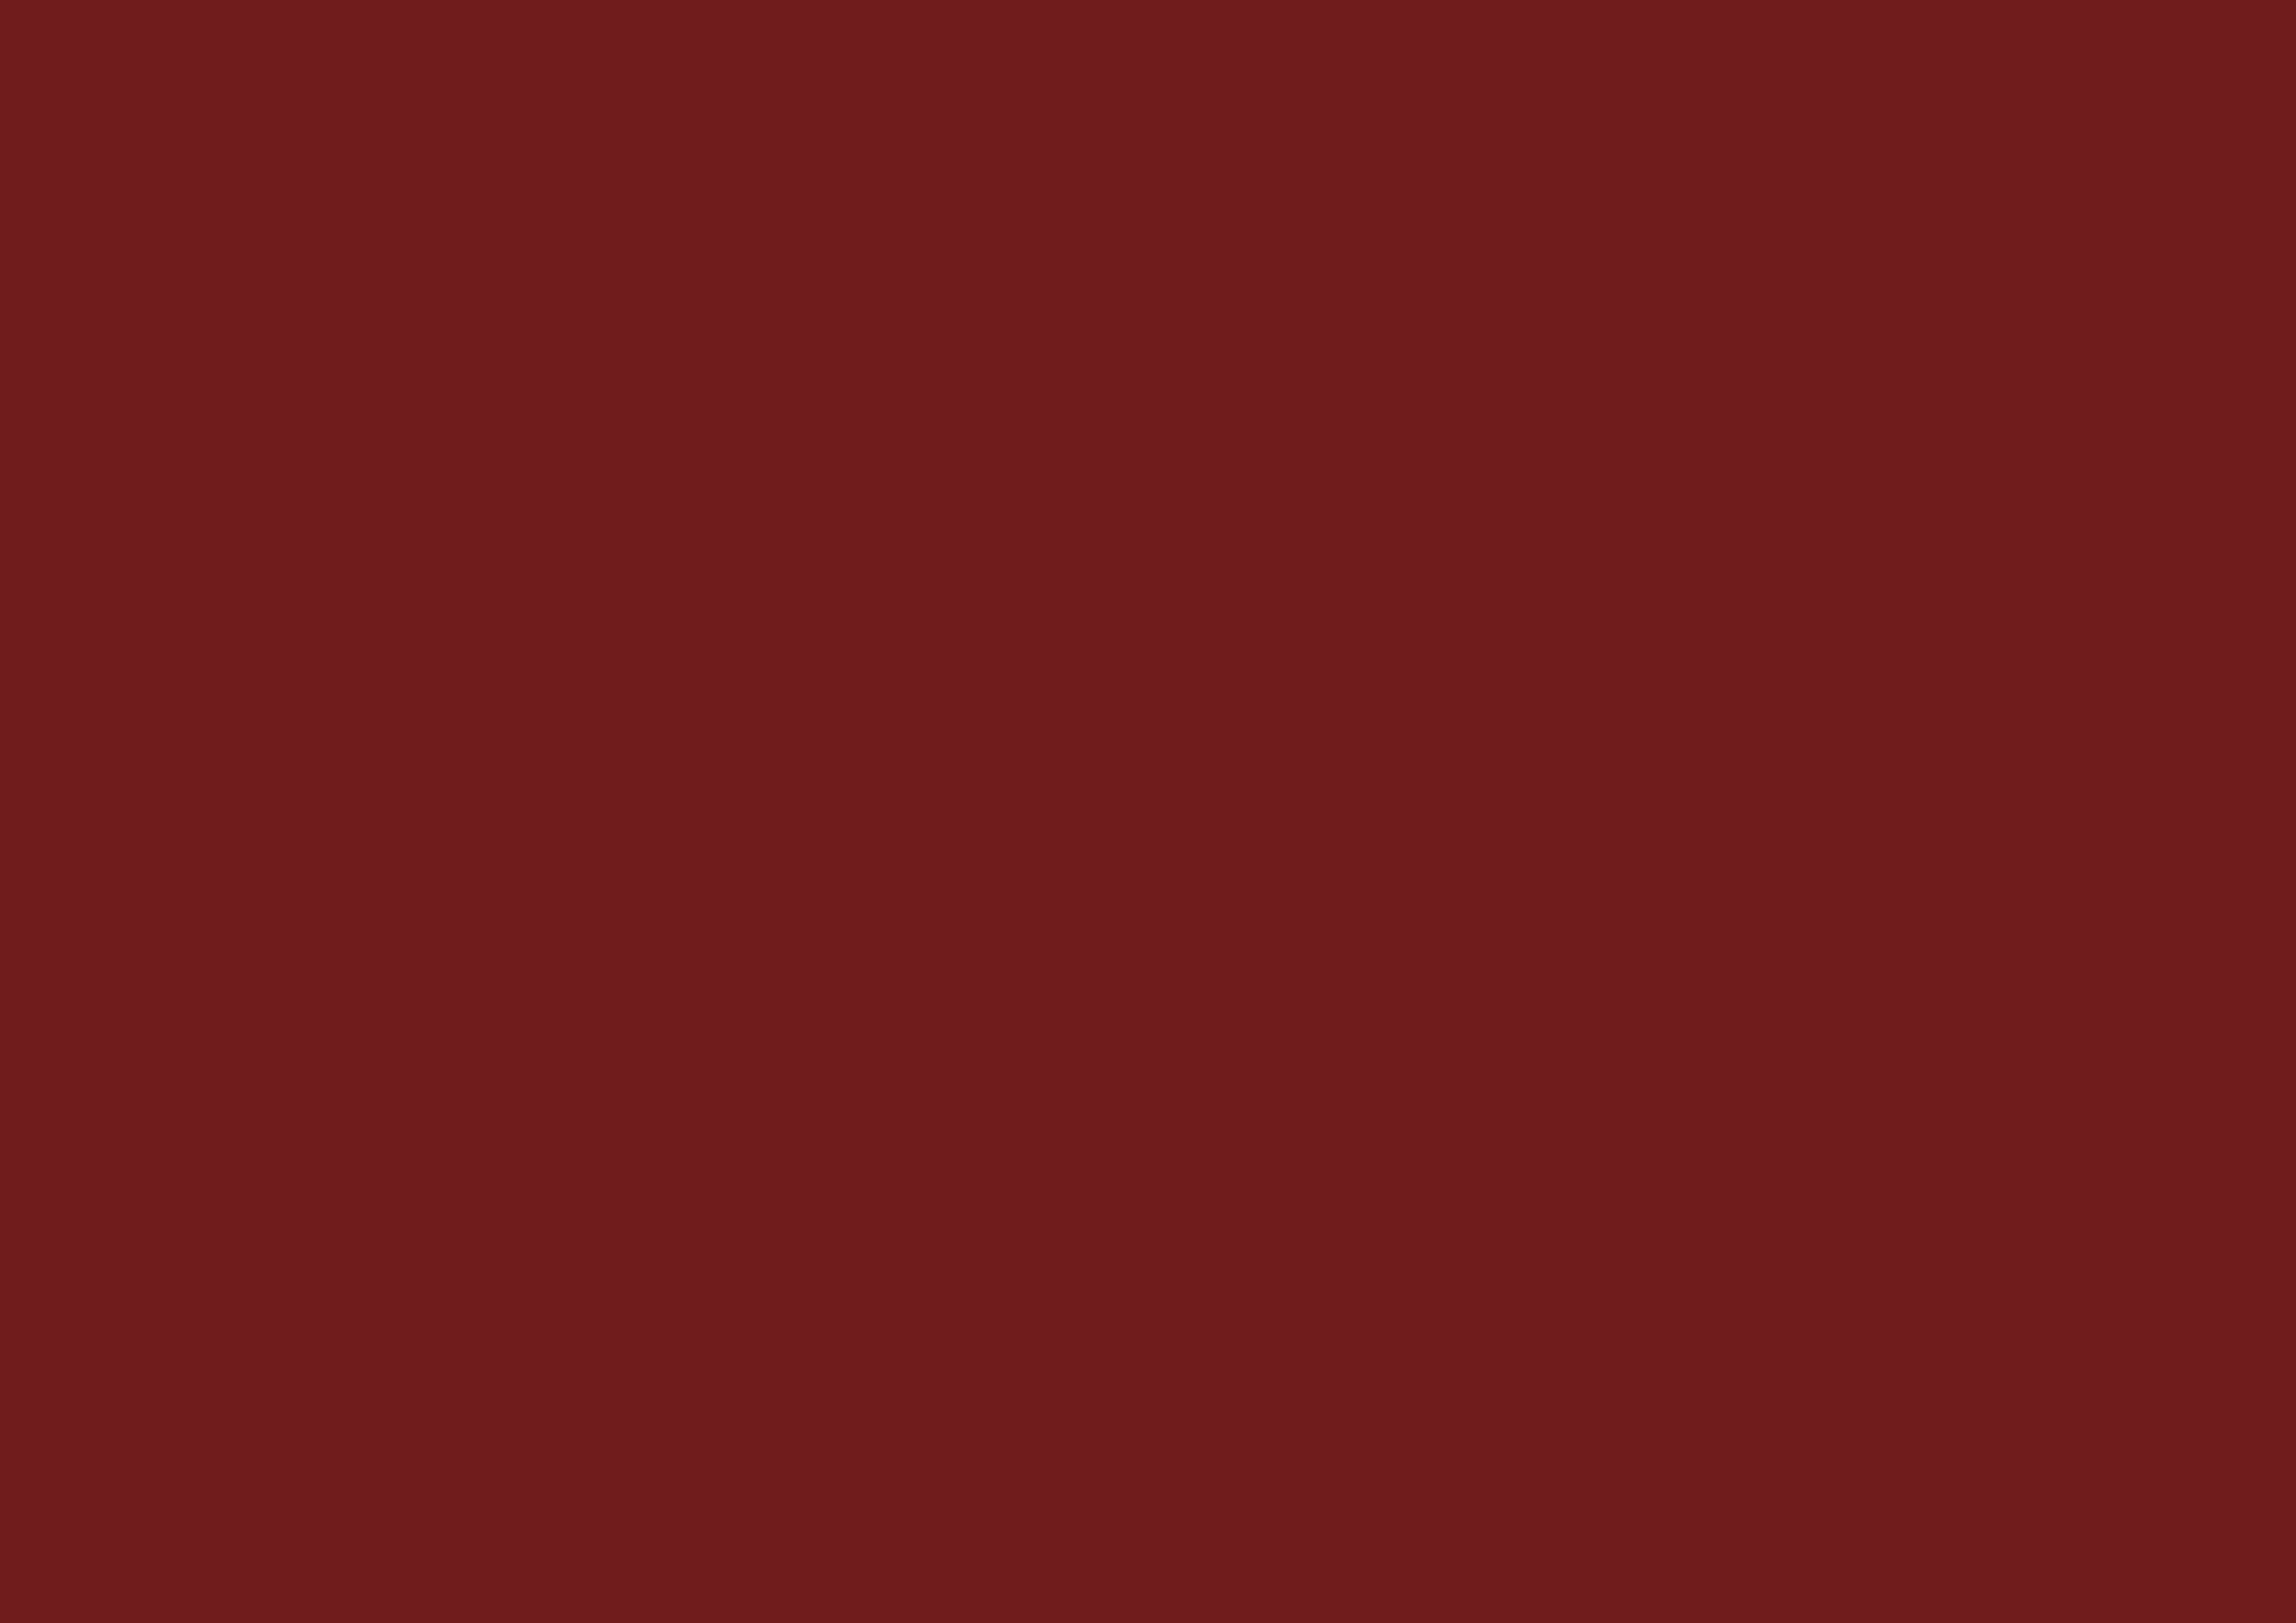 3508x2480 Prune Solid Color Background